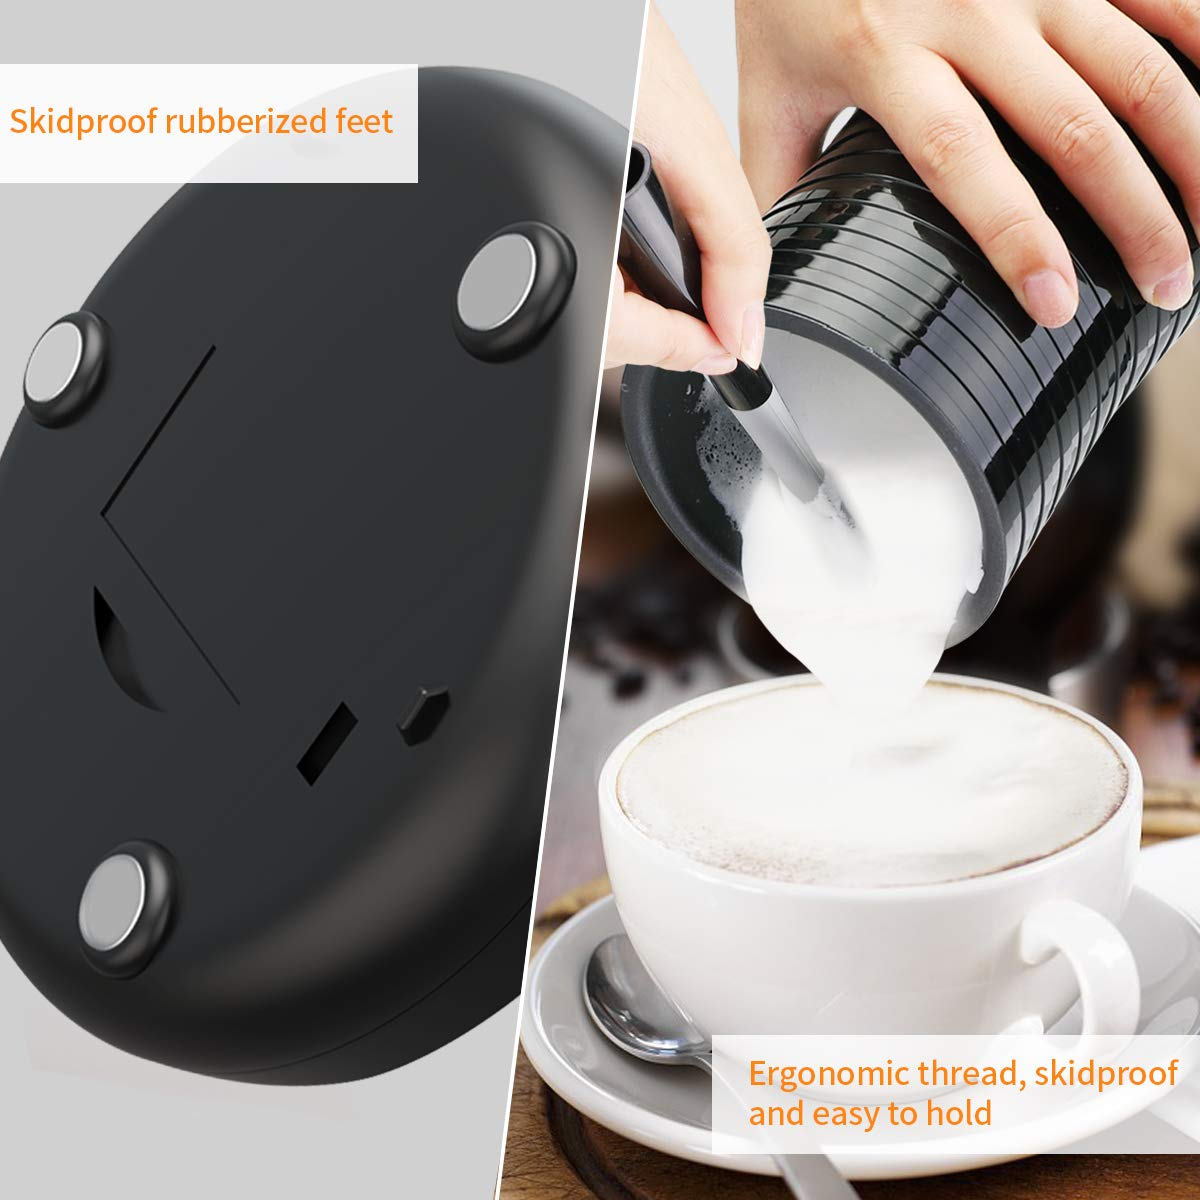 Milk Frother Electric, Milk Steamer for Hot and Cold Milk Froth, Rapid Soft Foam Maker with Non-Stick Interior, Perfect for Cappuccino Hot Chocolate/Coffee/Latte, 400W, 240ml, Black